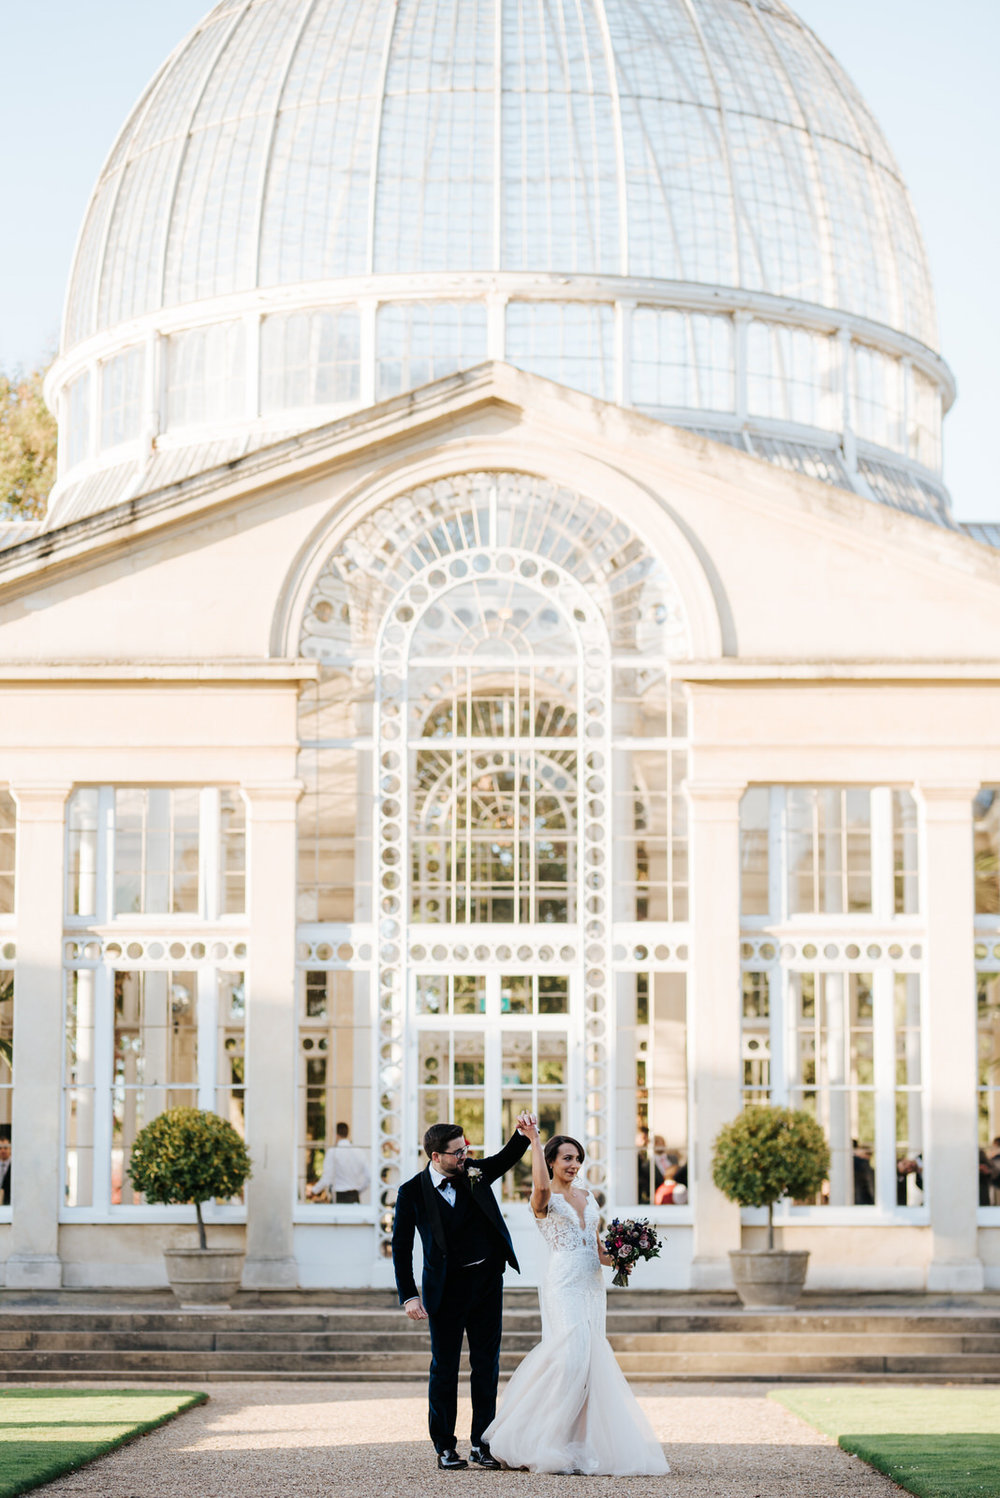 Bride and groom dance in front of Syon House's great conservatory building